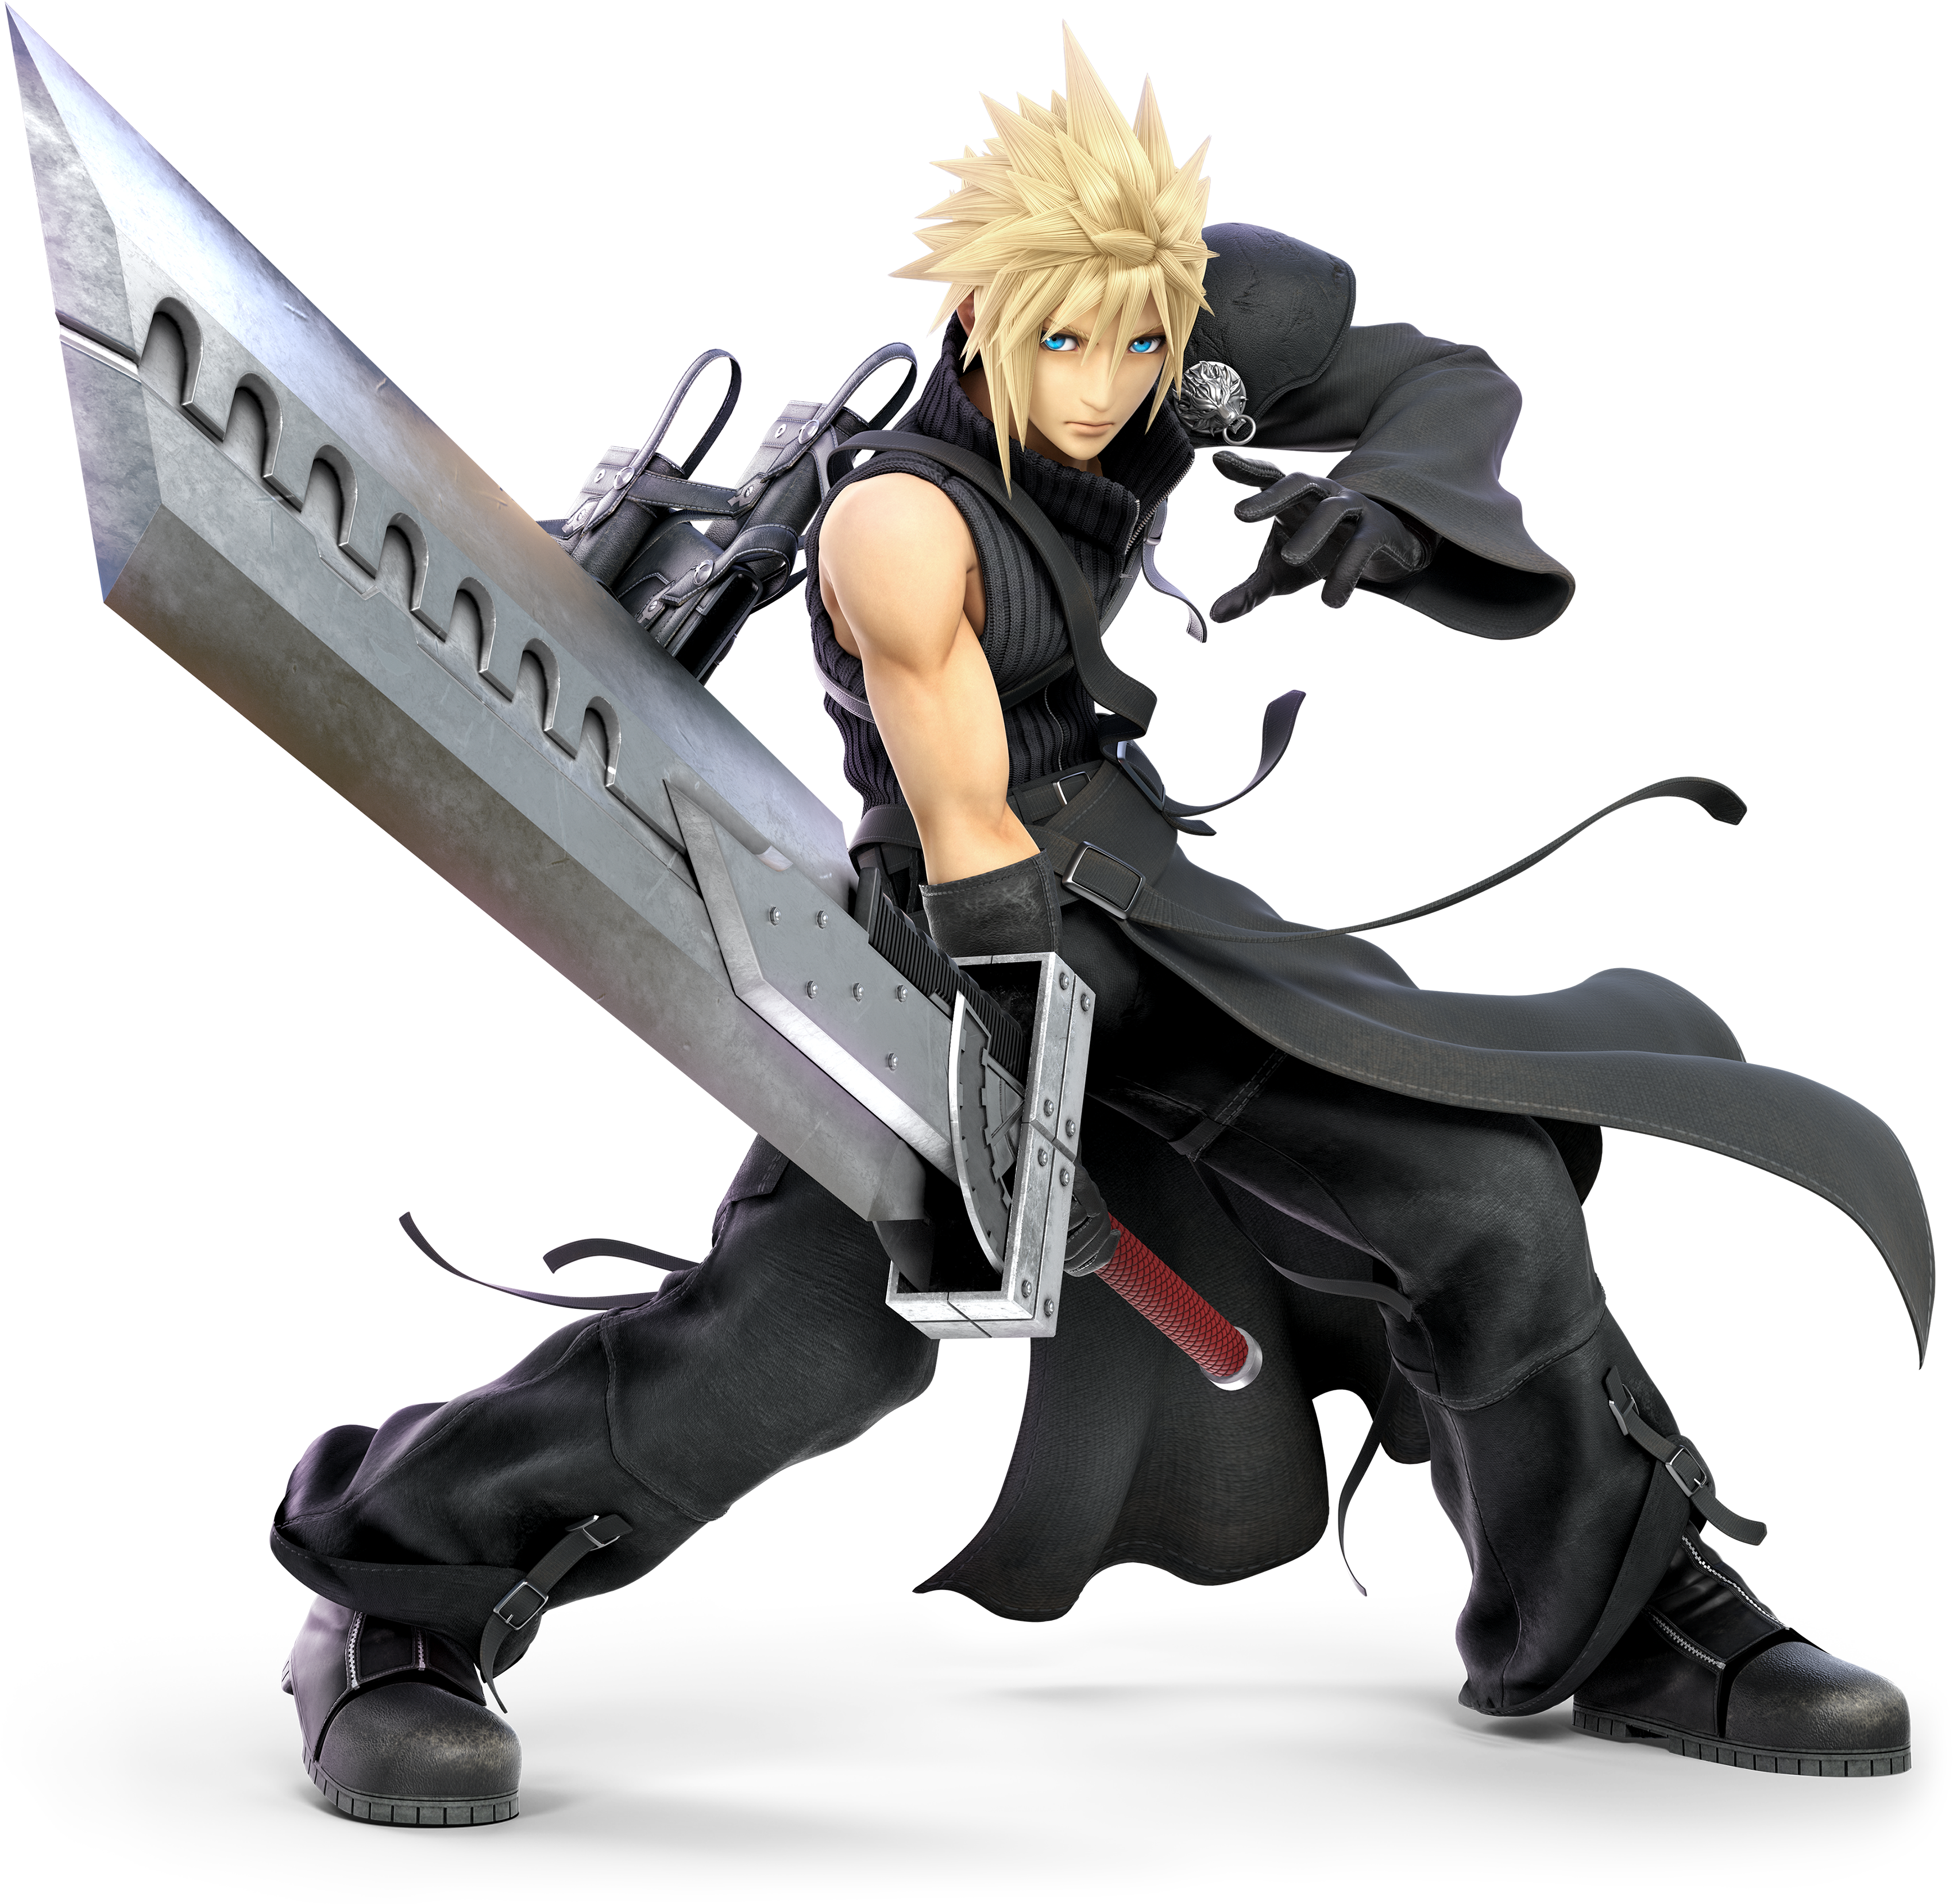 Cloud (Super Smash Bros. Ultimate)